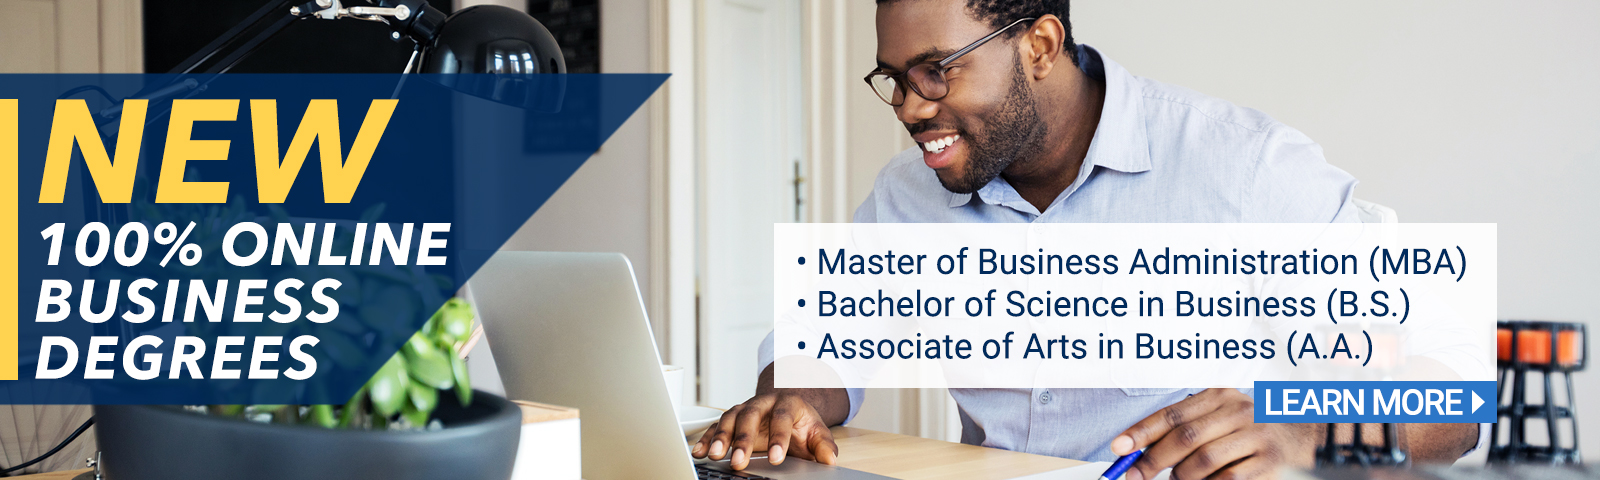 CIU now offers three new 100% online business degree programs: an MBA, and Associate of Arts in Business and a Bachelor of Science in Business.